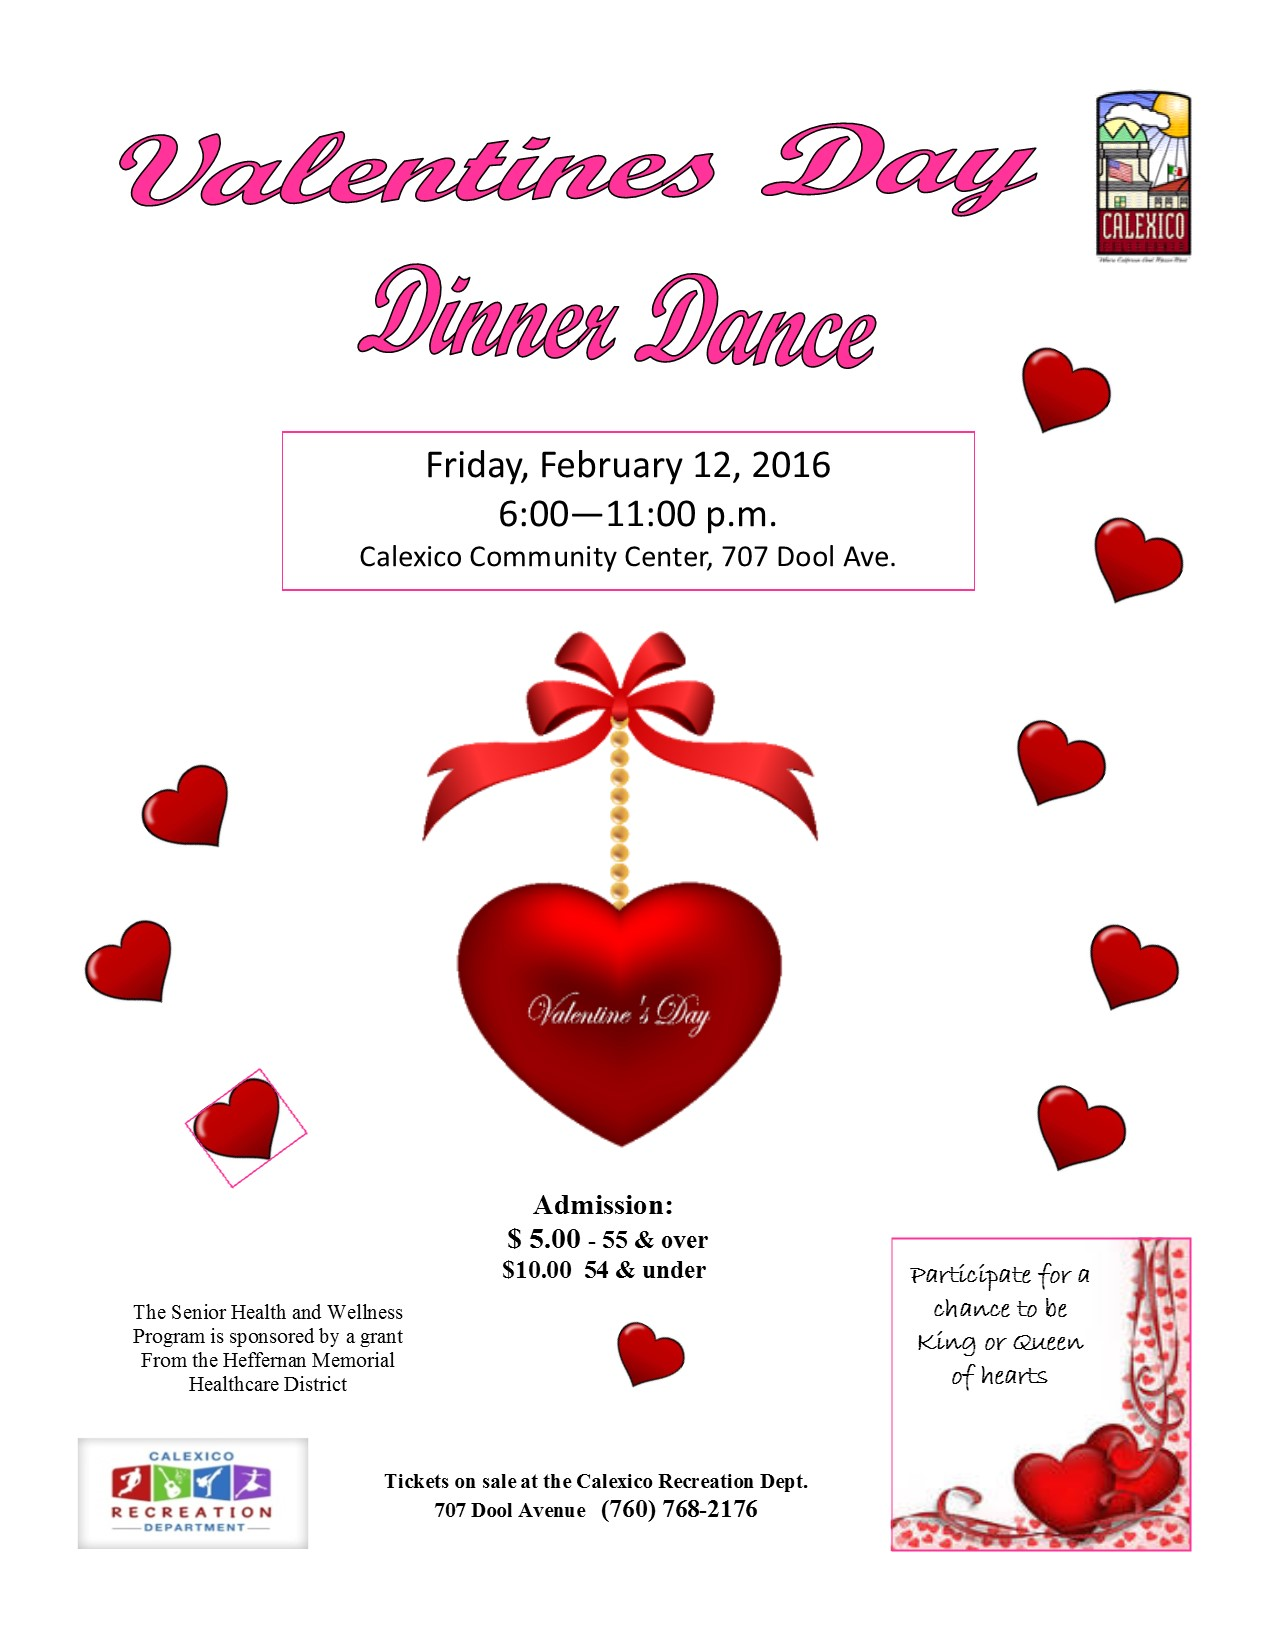 Valentines Day Dinner Dance Calexico Recreation Department